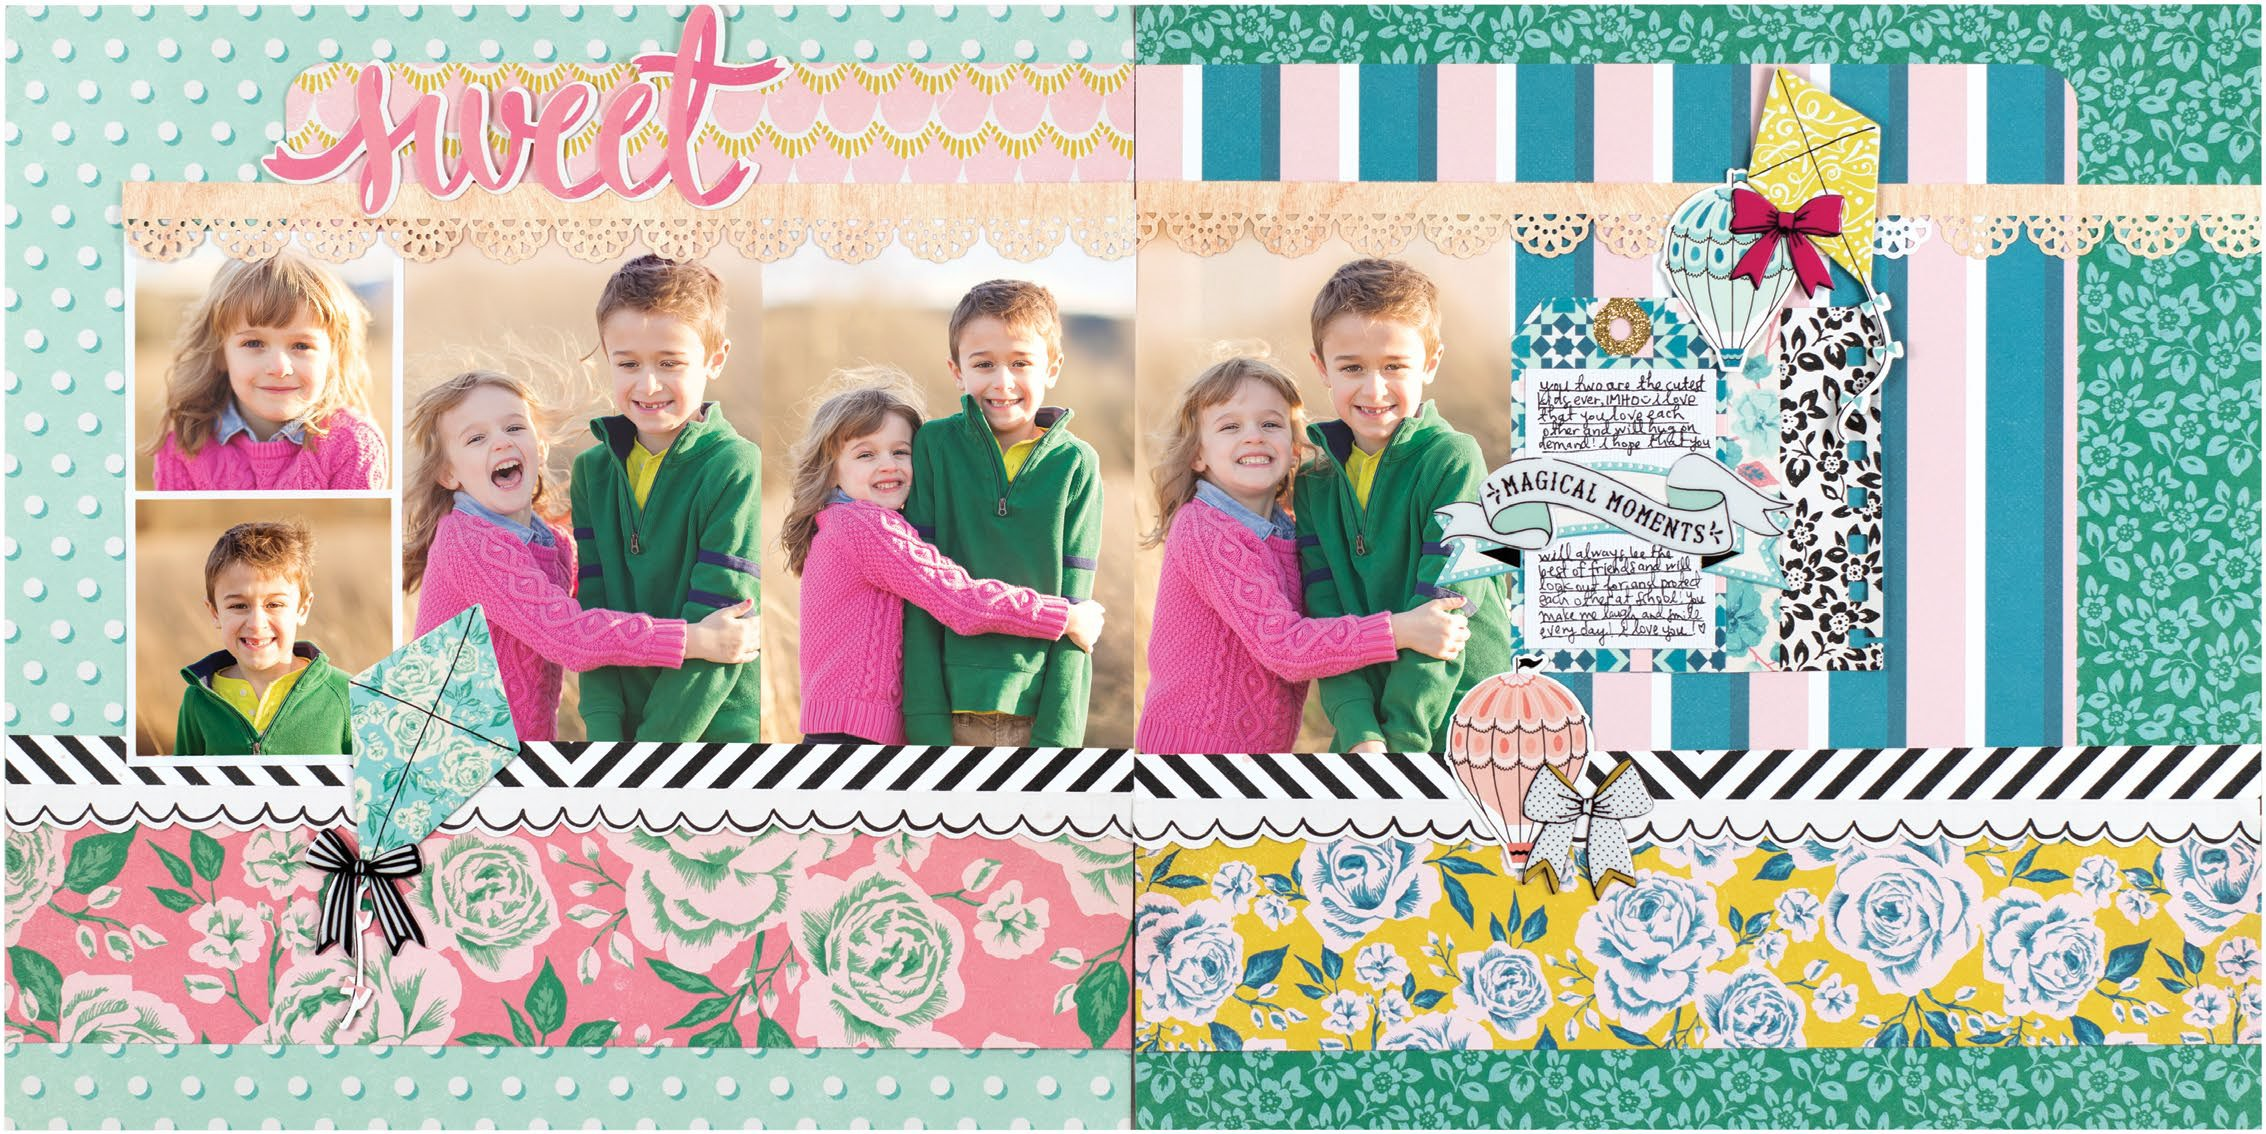 Magical Moments by Paige Evans - Scrapbook & Cards Today Spring 2018